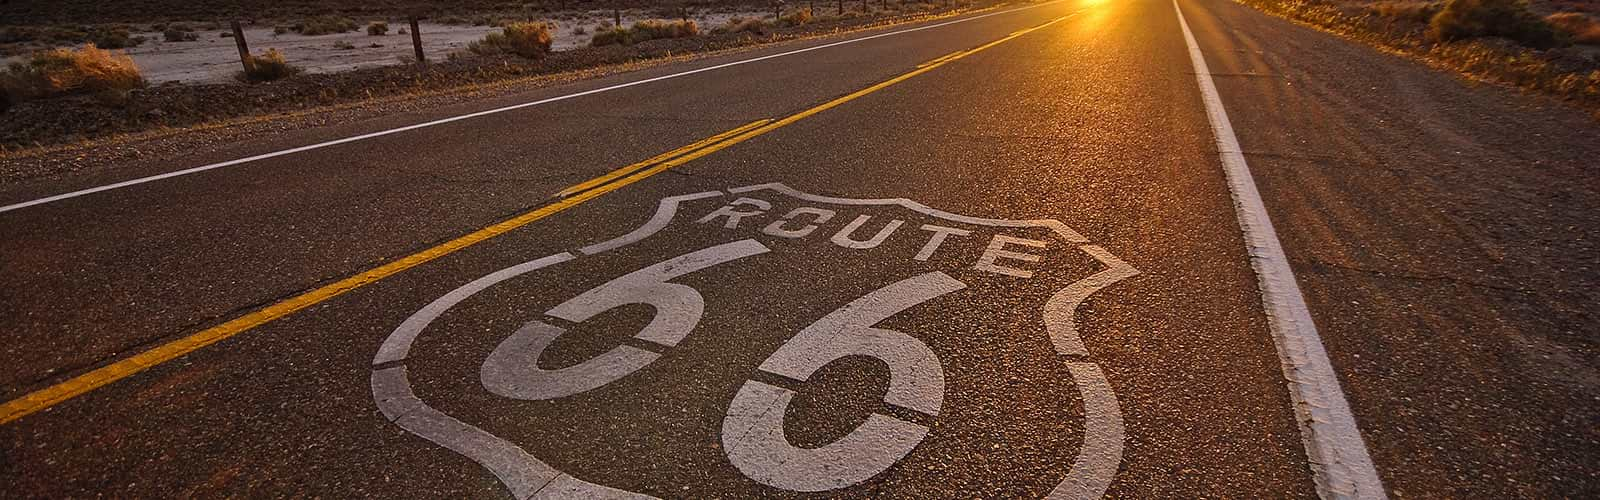 Route 66 The Mother Road of America